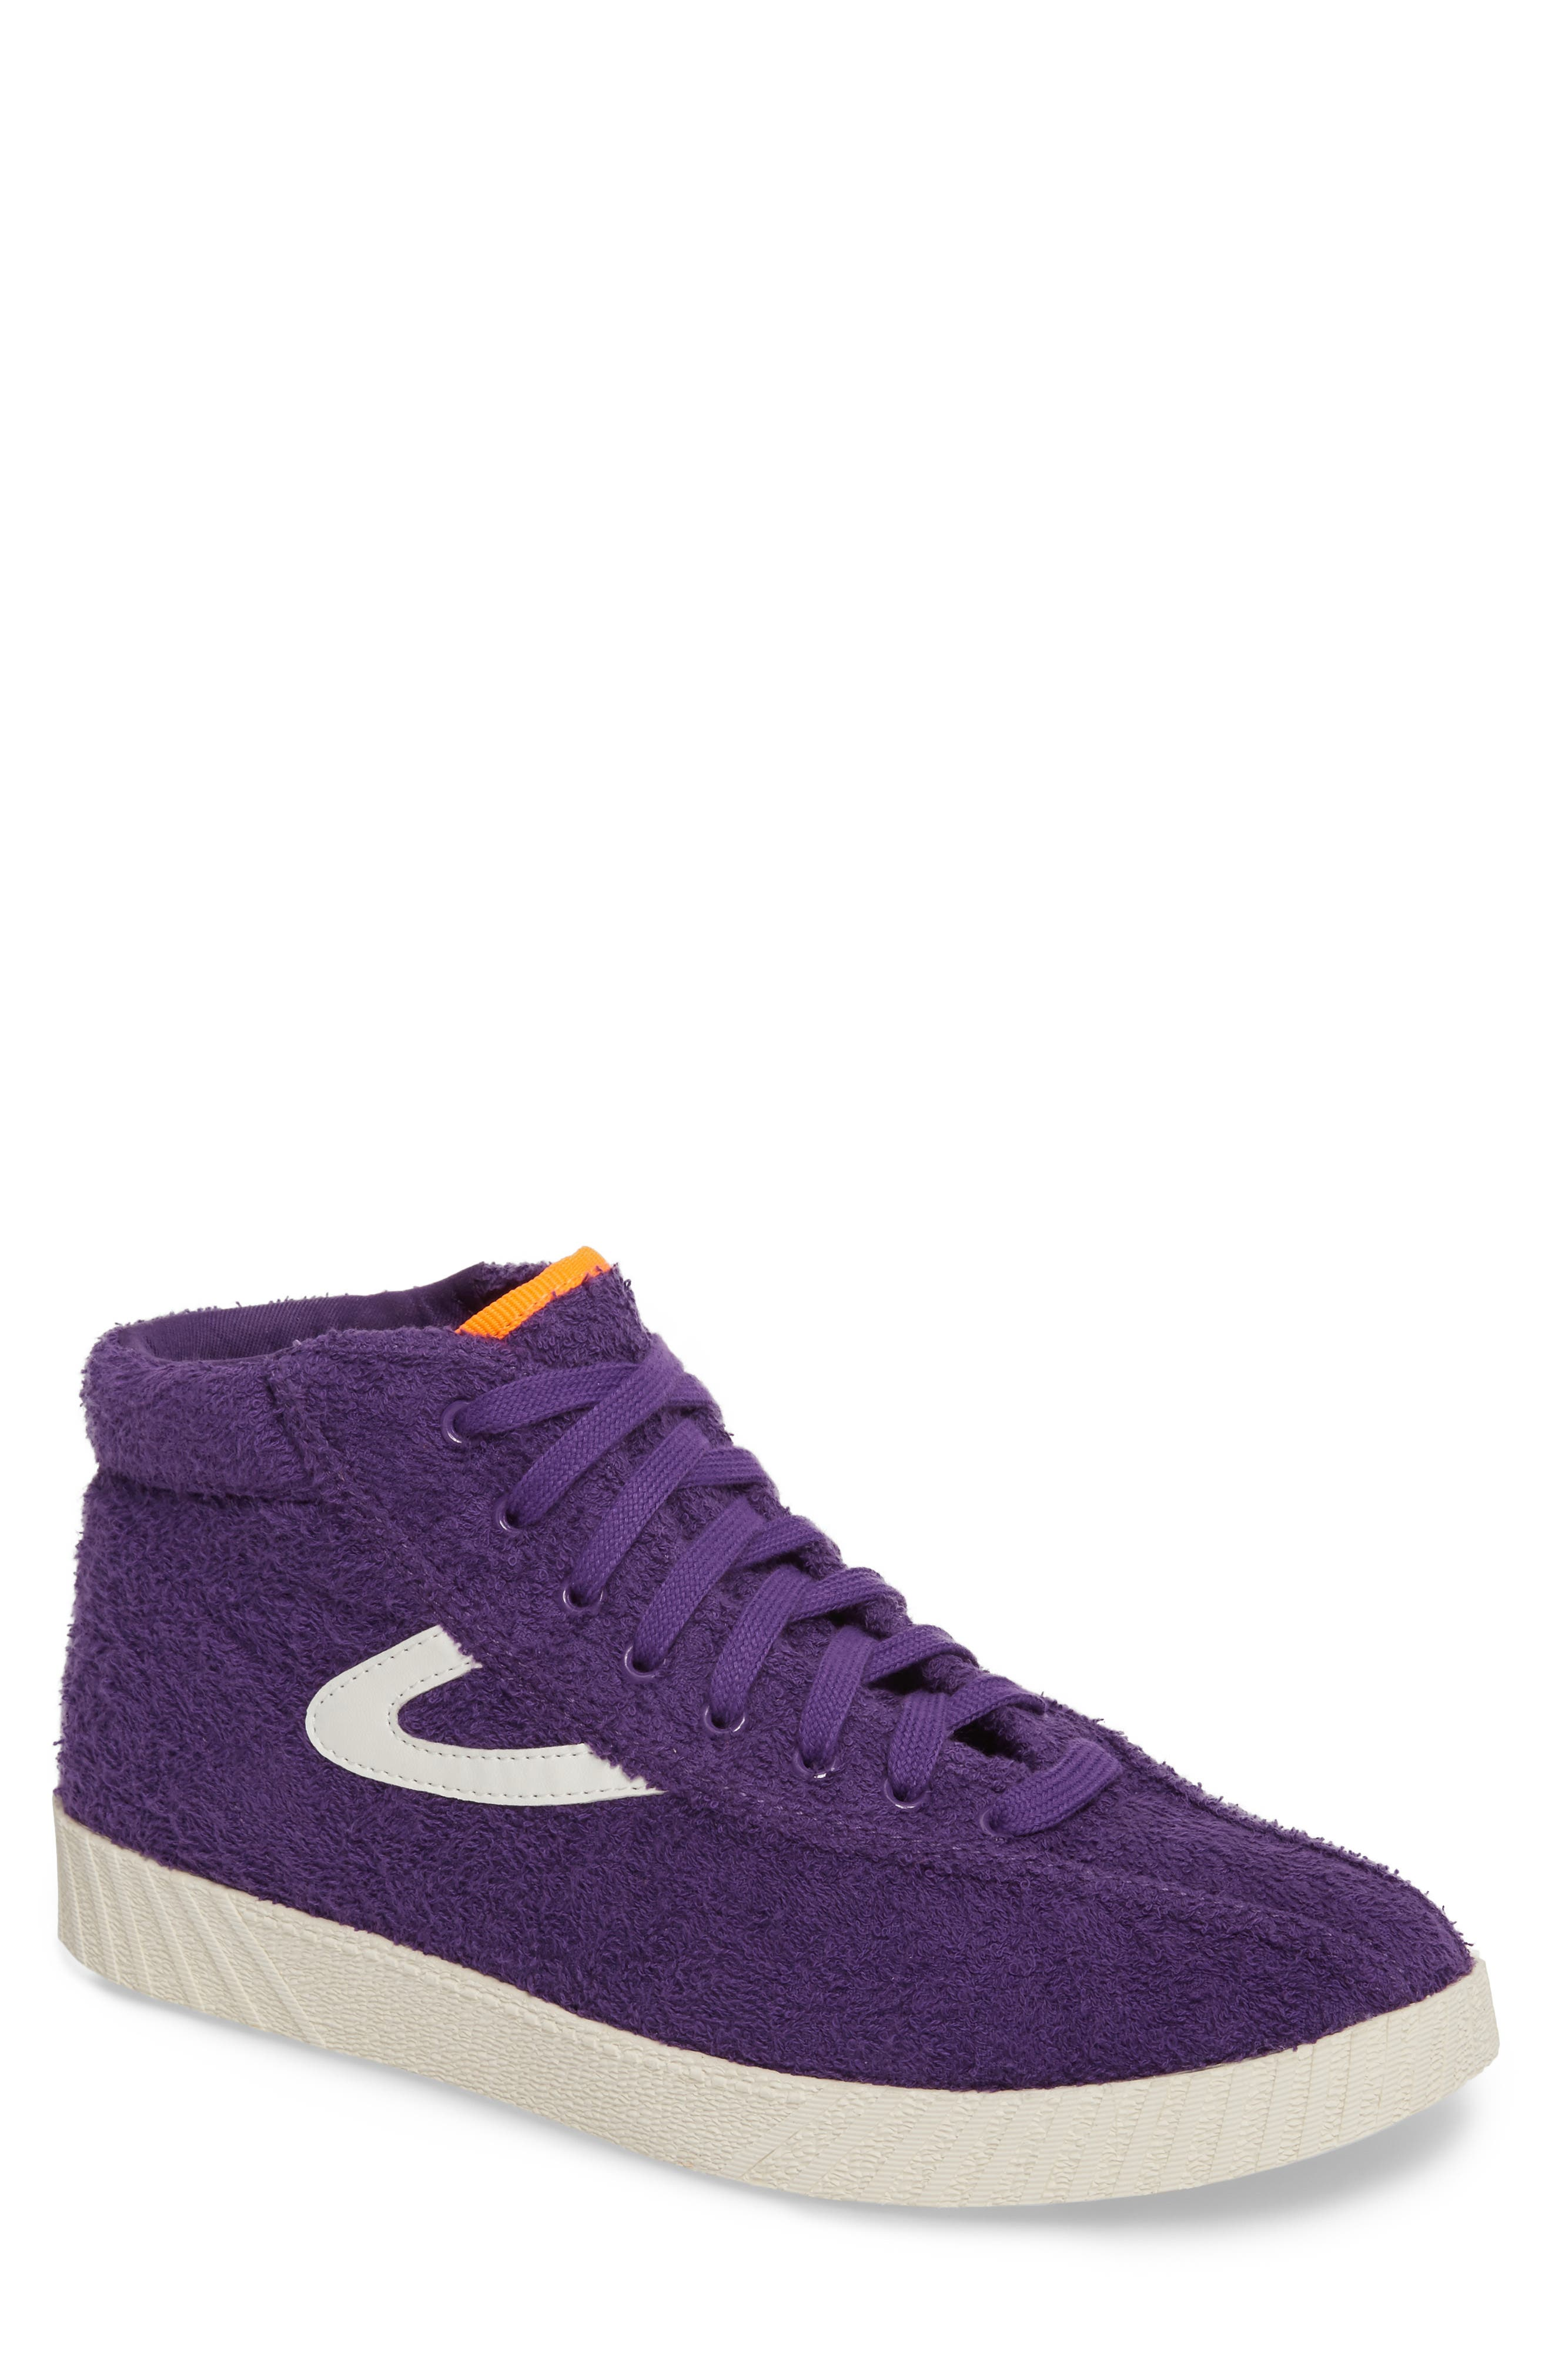 Tretorn Andre 3000 Nylite High Top Sneaker, Purple